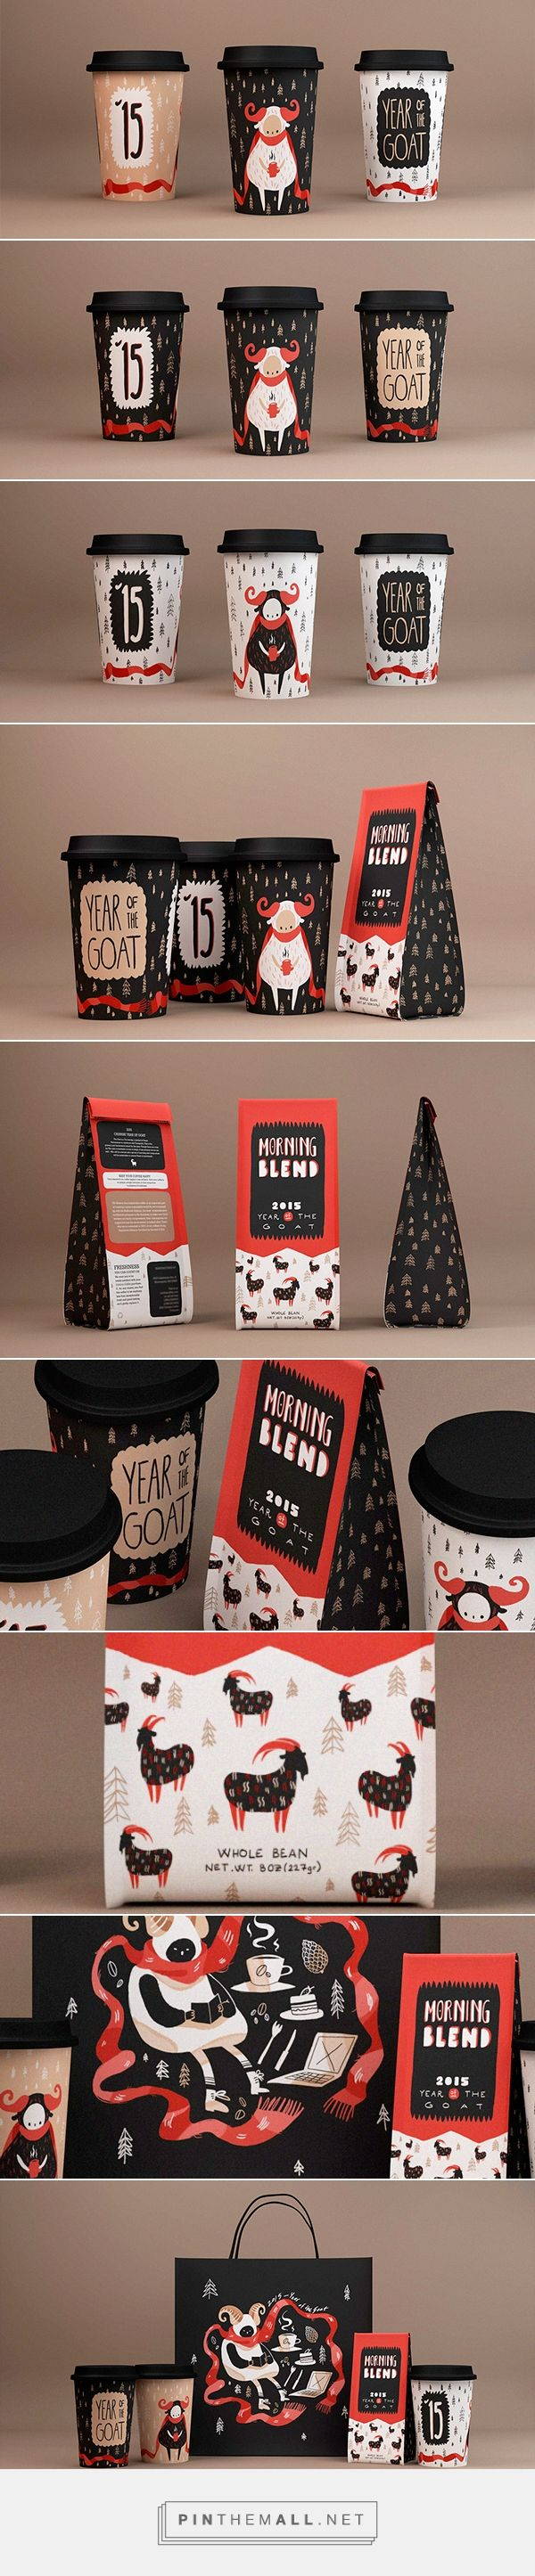 Chinese Year of the Goat / Coffee packaging PD